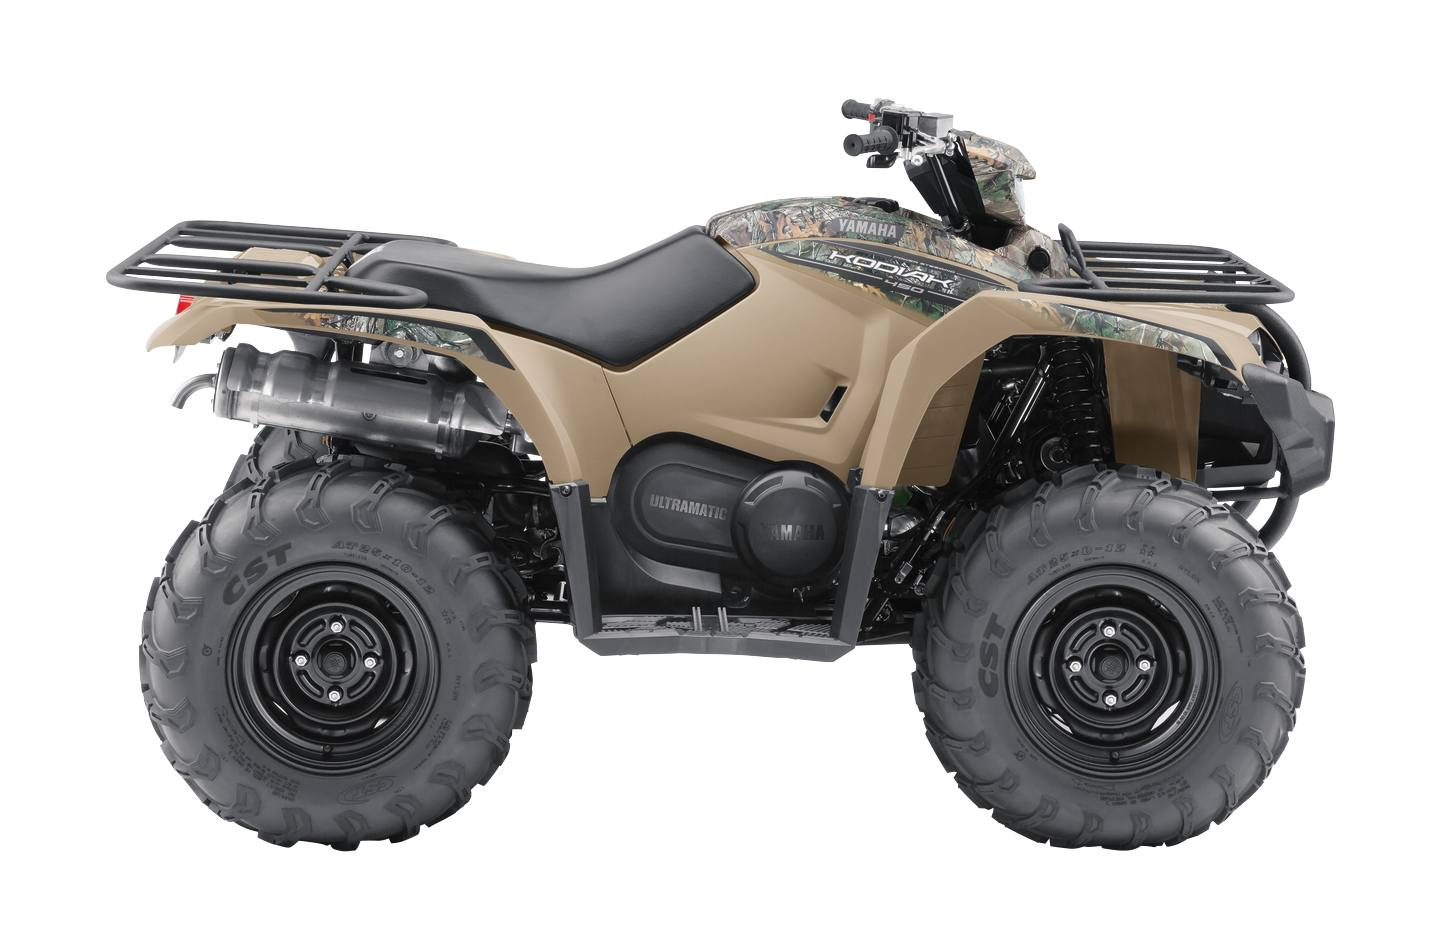 2018 Yamaha Kodiak 450 EPS - Beige with Camo Graphics